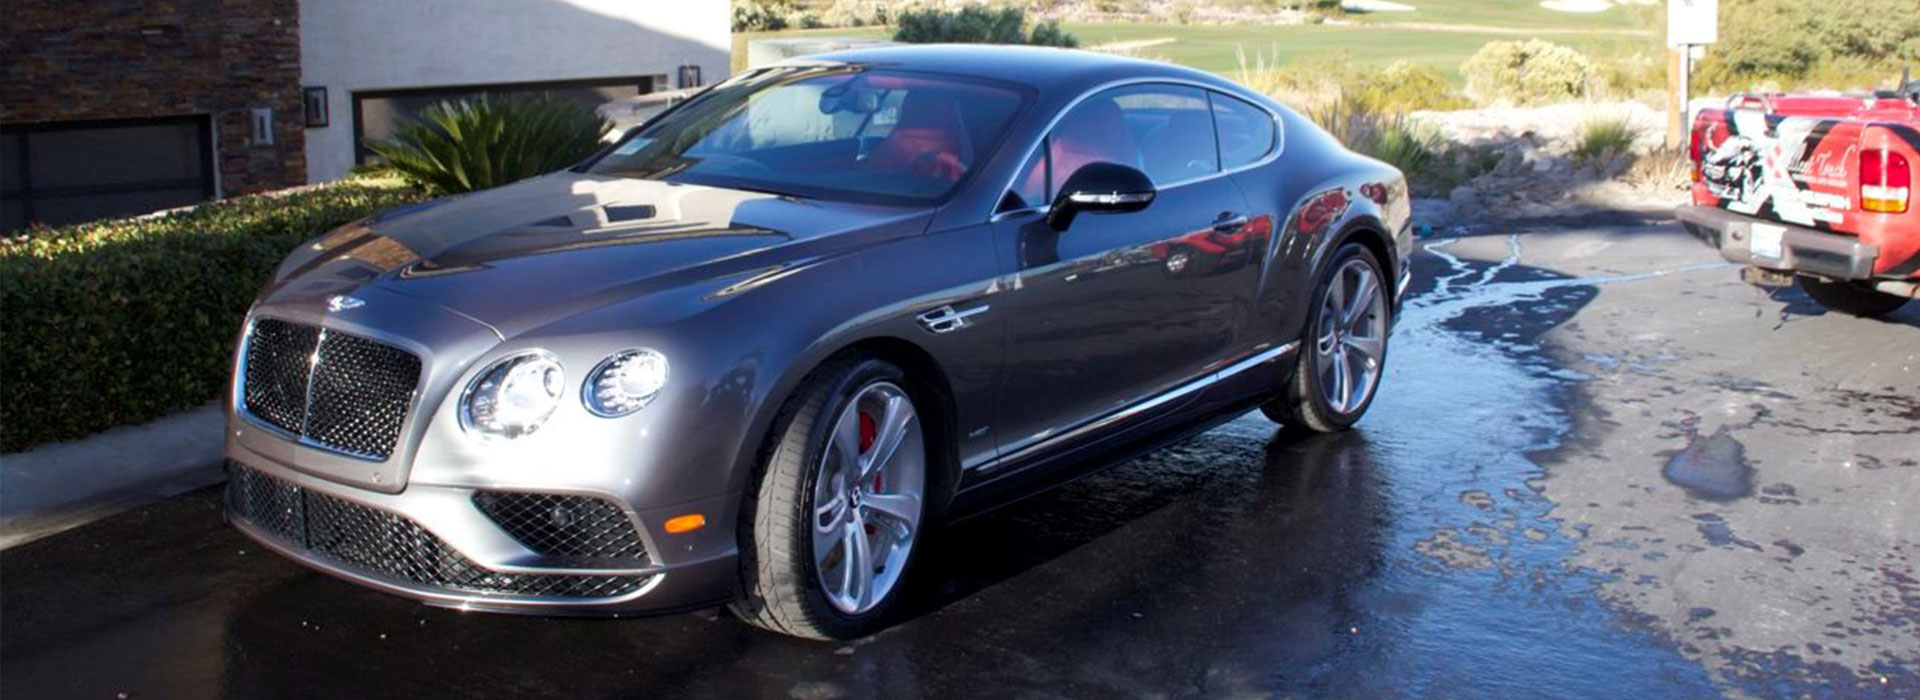 Professional mobile auto detailing in las vegas nv xcellent touch solutioingenieria Choice Image